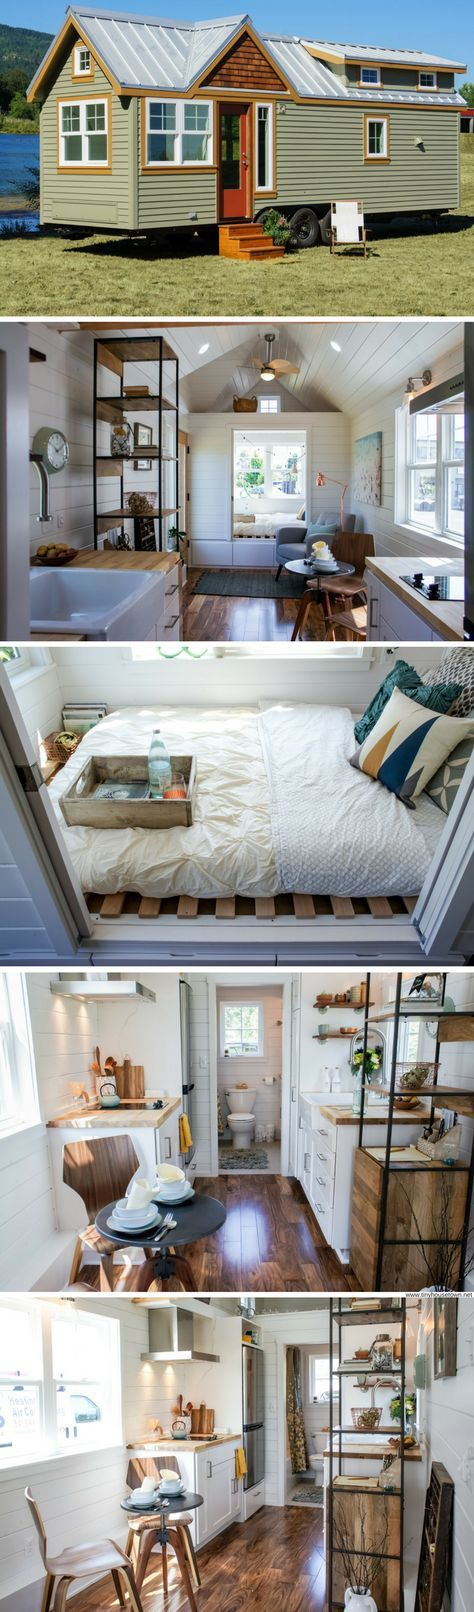 Best 25+ Cute small houses ideas on Pinterest Small cottage - blumenkubel und pflanzkubel design wohnraum